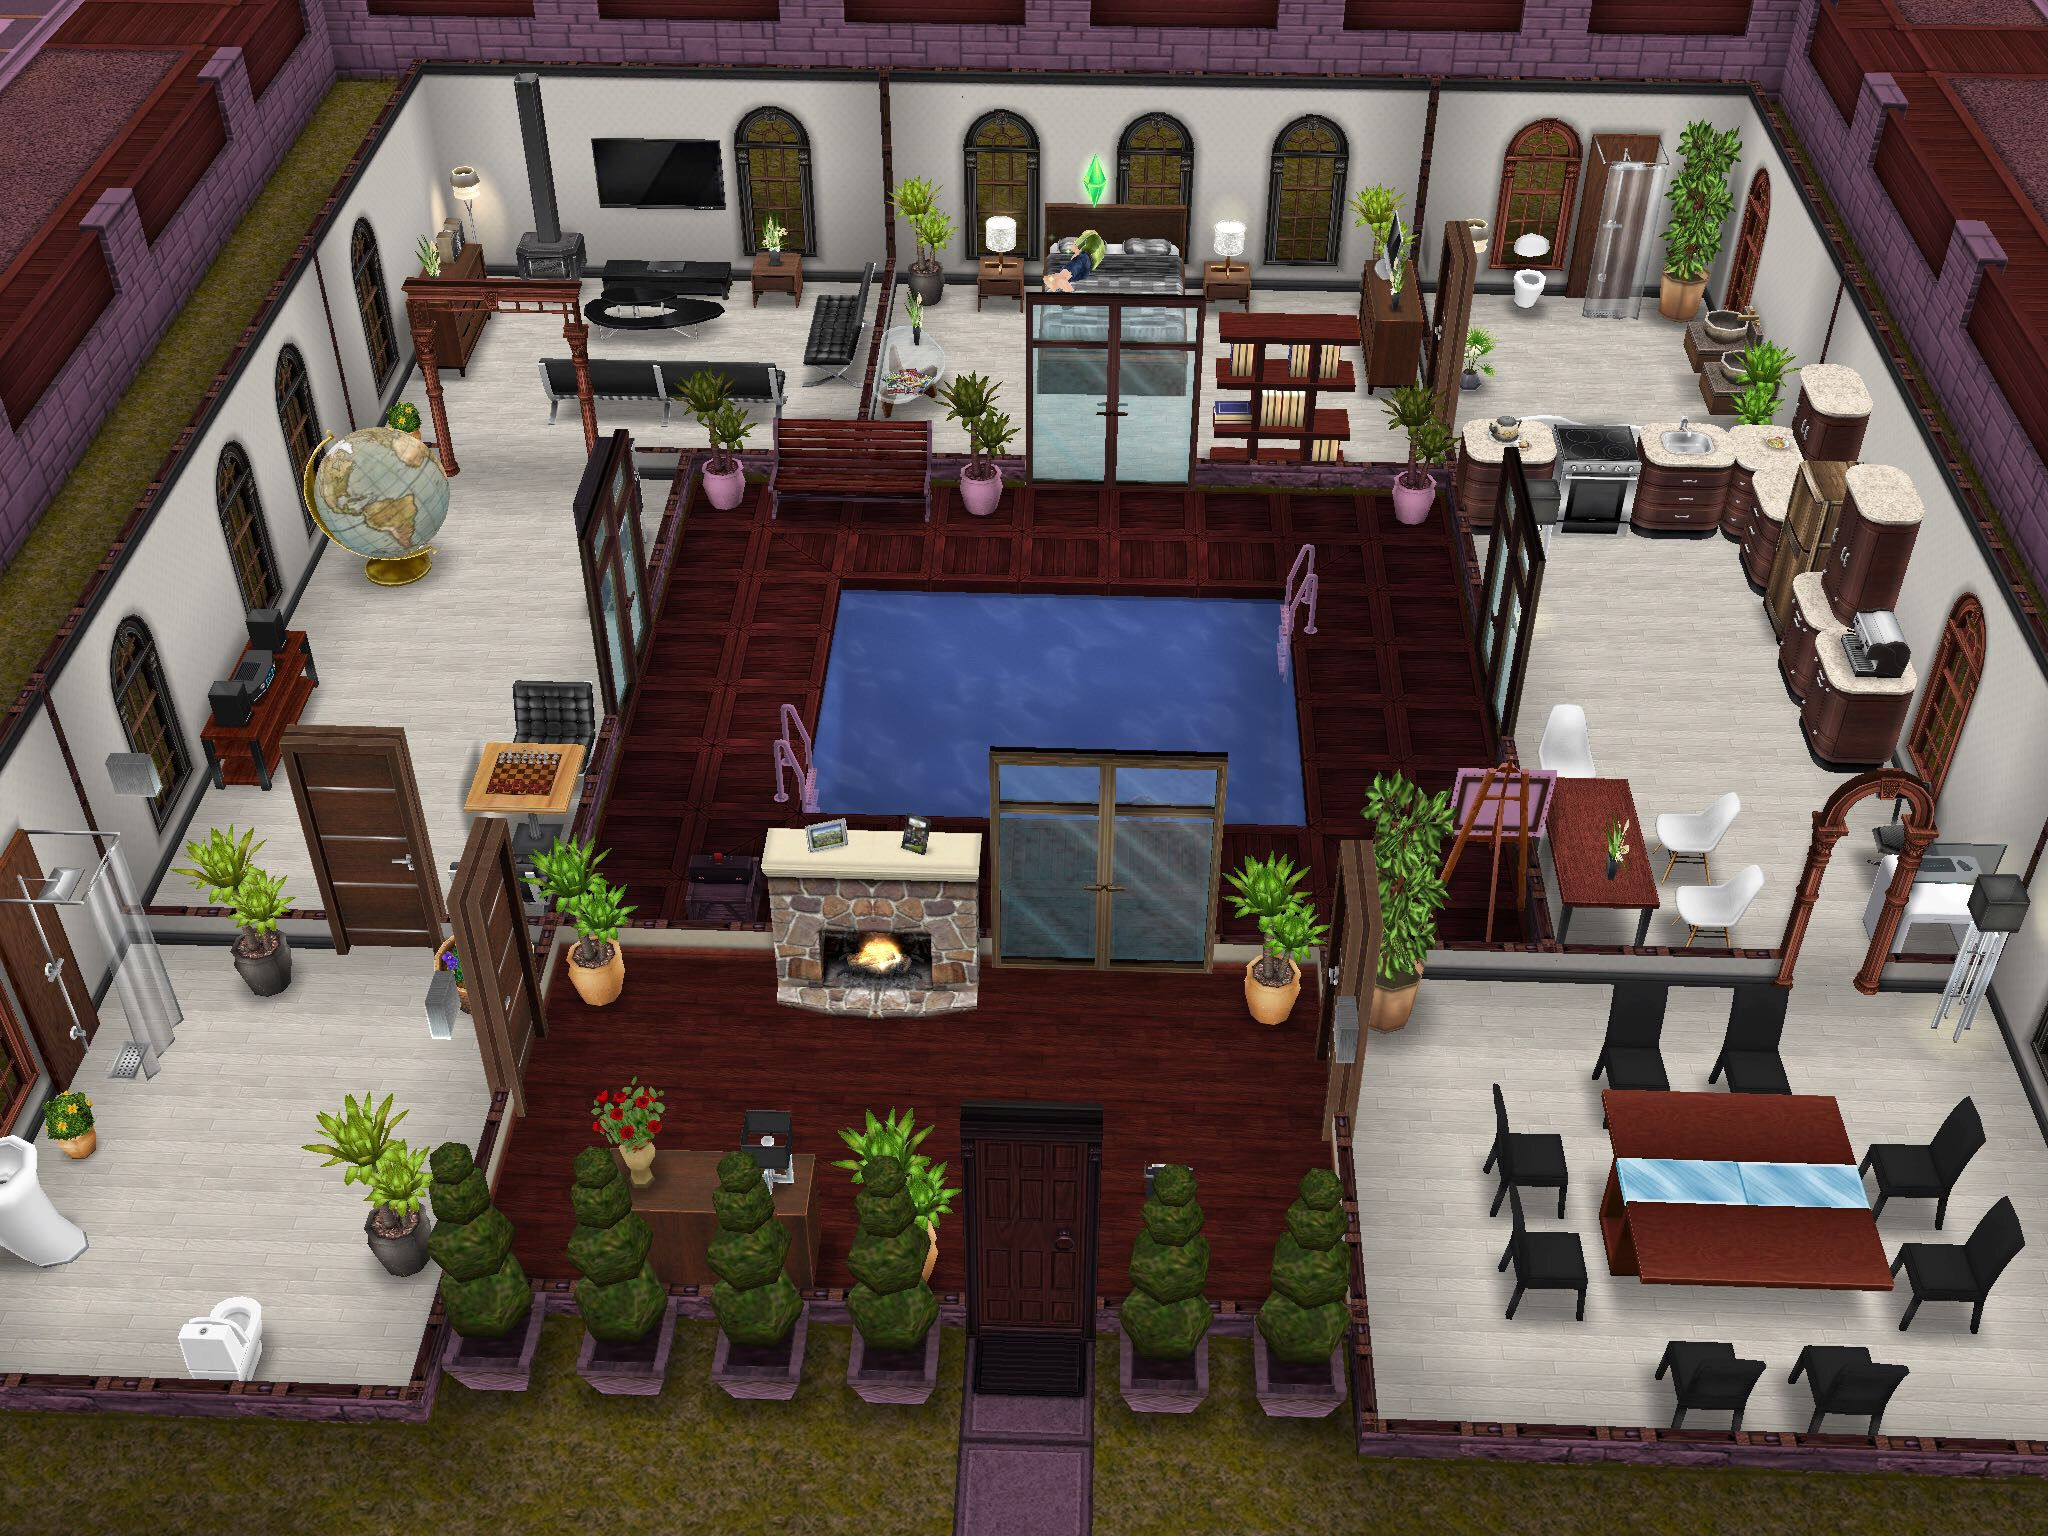 Sims simsfreeplay freeplay sims freeplay pinterest for Casa de diseno sims freeplay